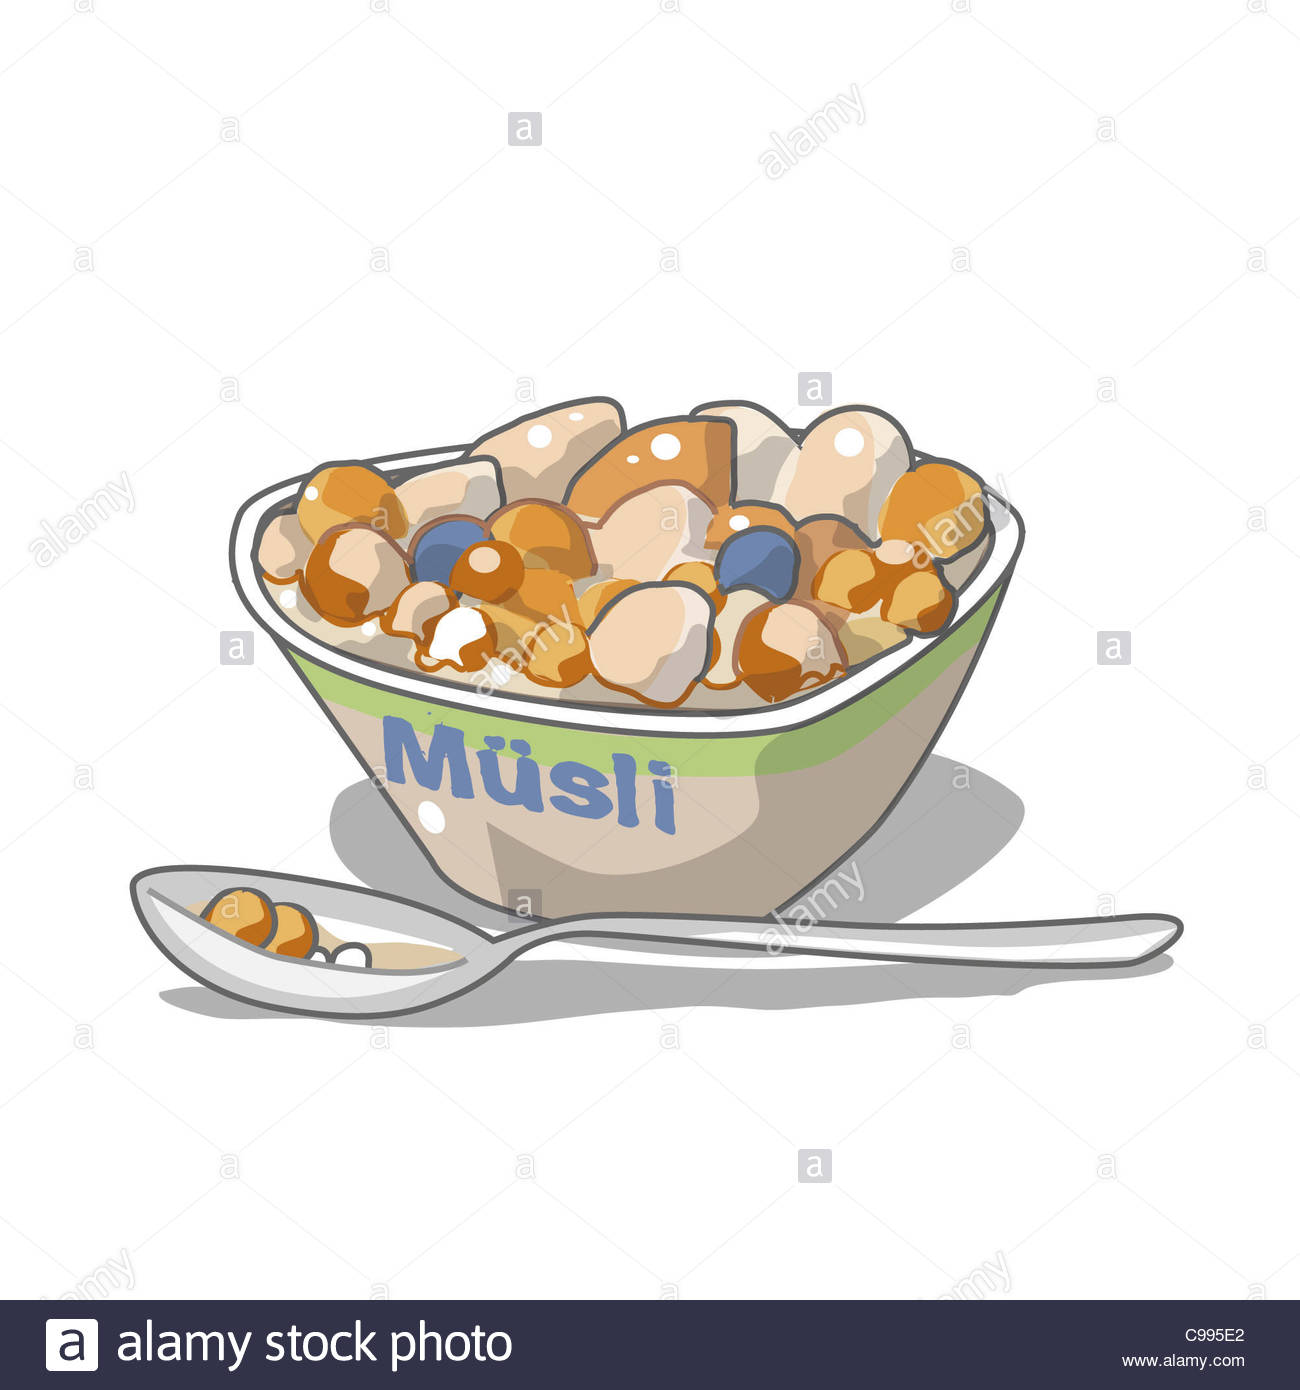 hight resolution of mslischale series food eat nutrition ernhrung food food cooking koch court stock image